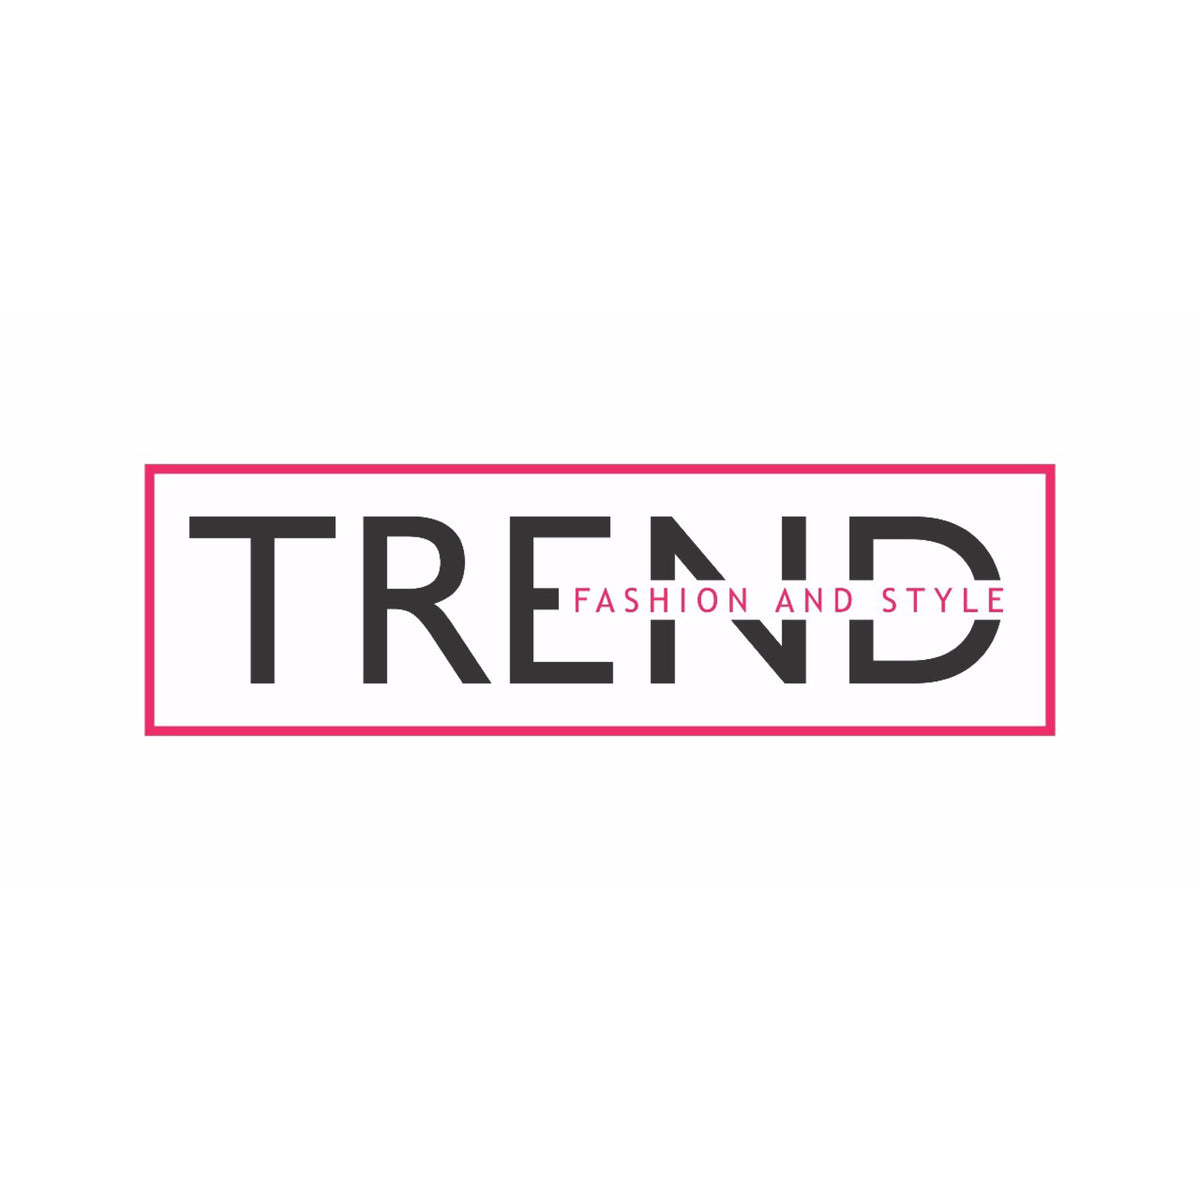 Trend Fashion and Style